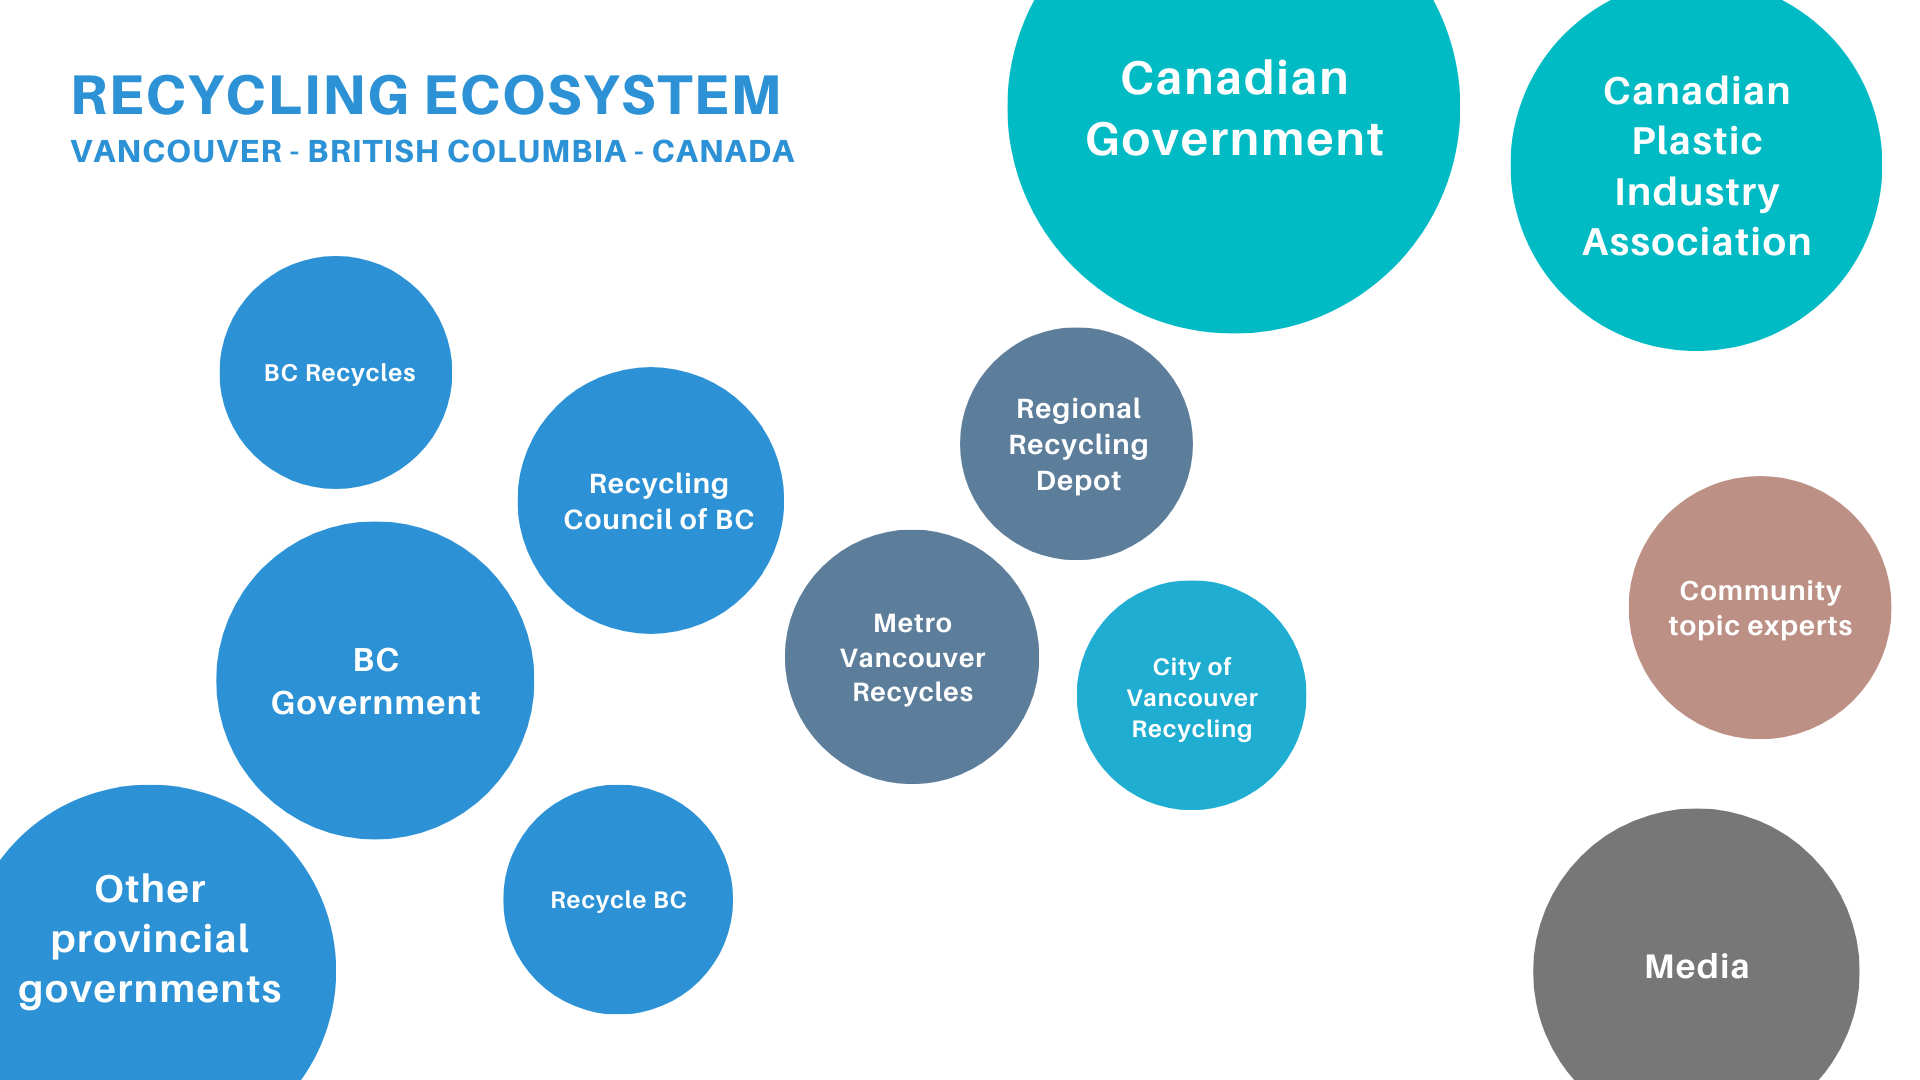 Second iteration of the recycling ecosystem map composed of different actors represented by circles.